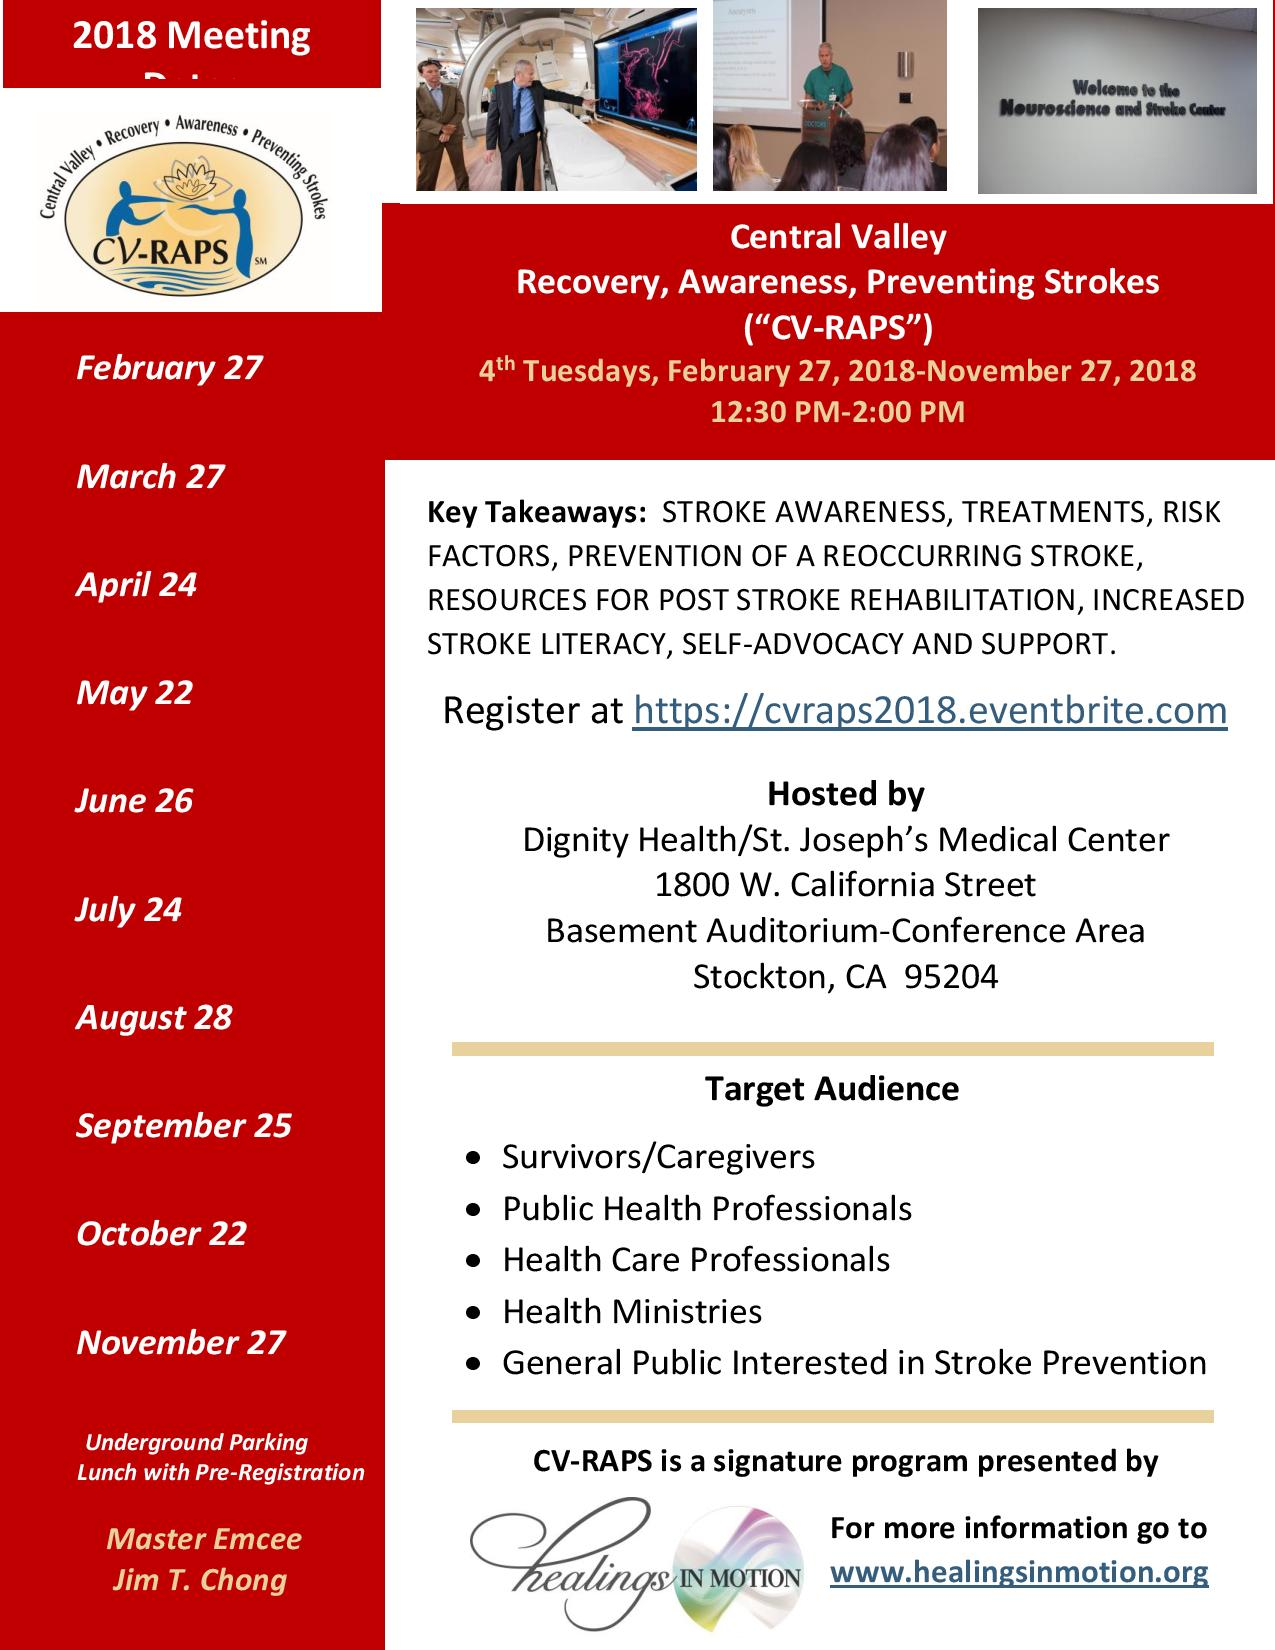 Central Valley Recovery Awareness Preventing Strokes Cv Raps